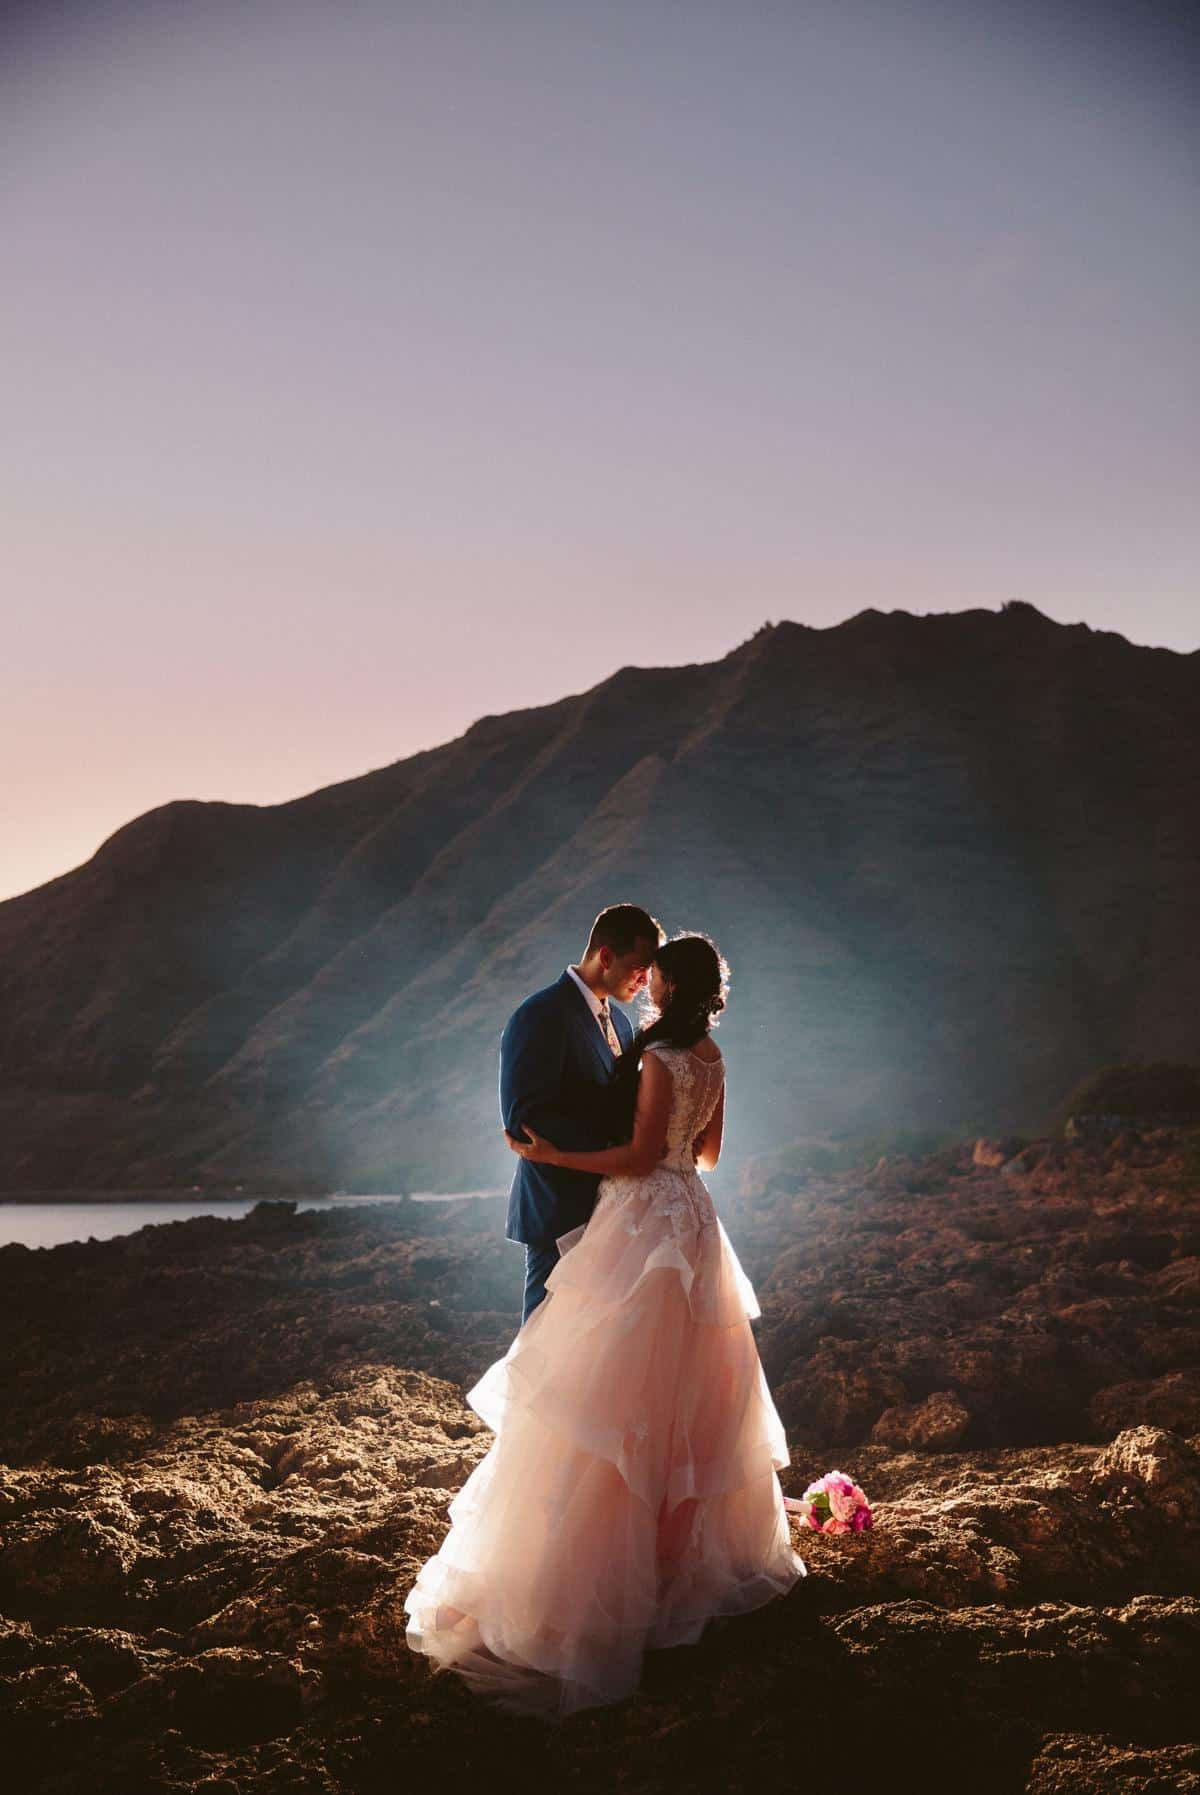 amazing sunset beach photo Oahu Hawaii Destination wedding photographer www.benandhopeweddings.com.au